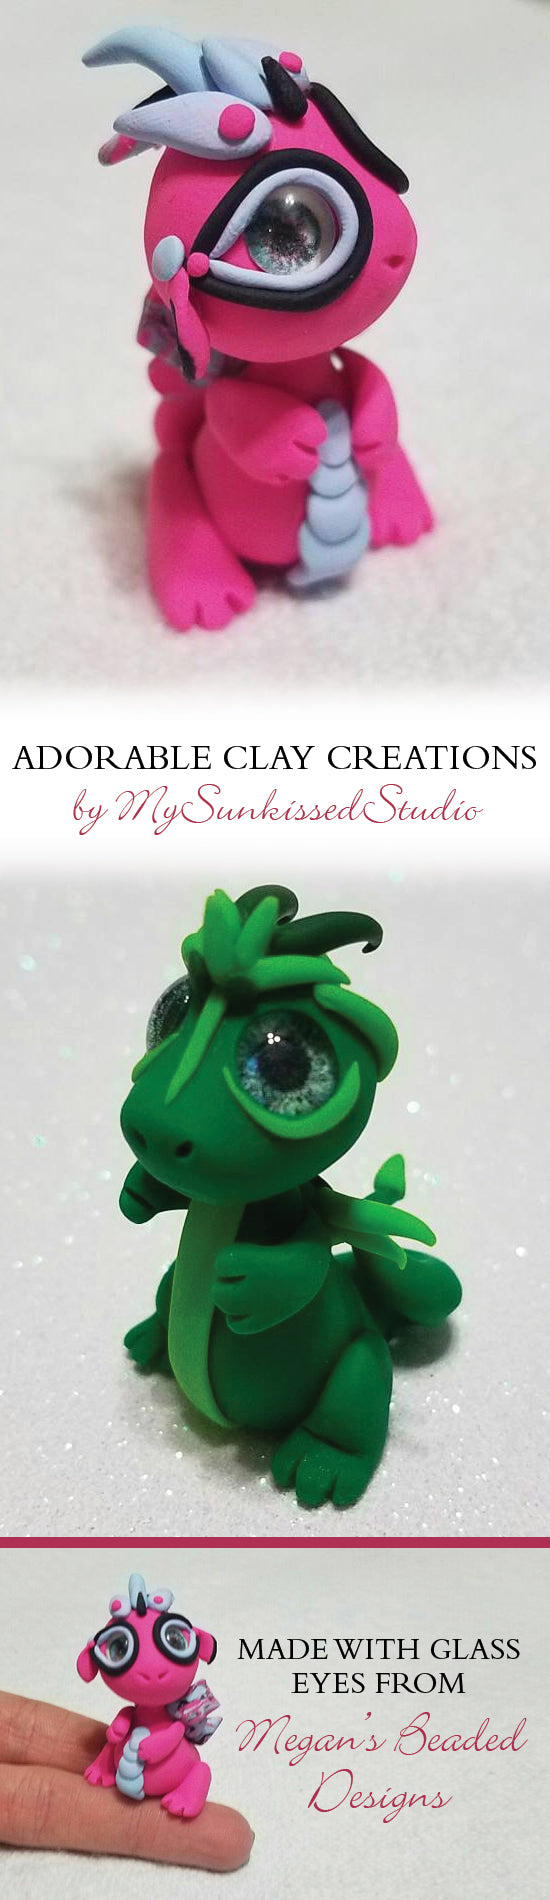 little clay dragons by mysunkissedstudio